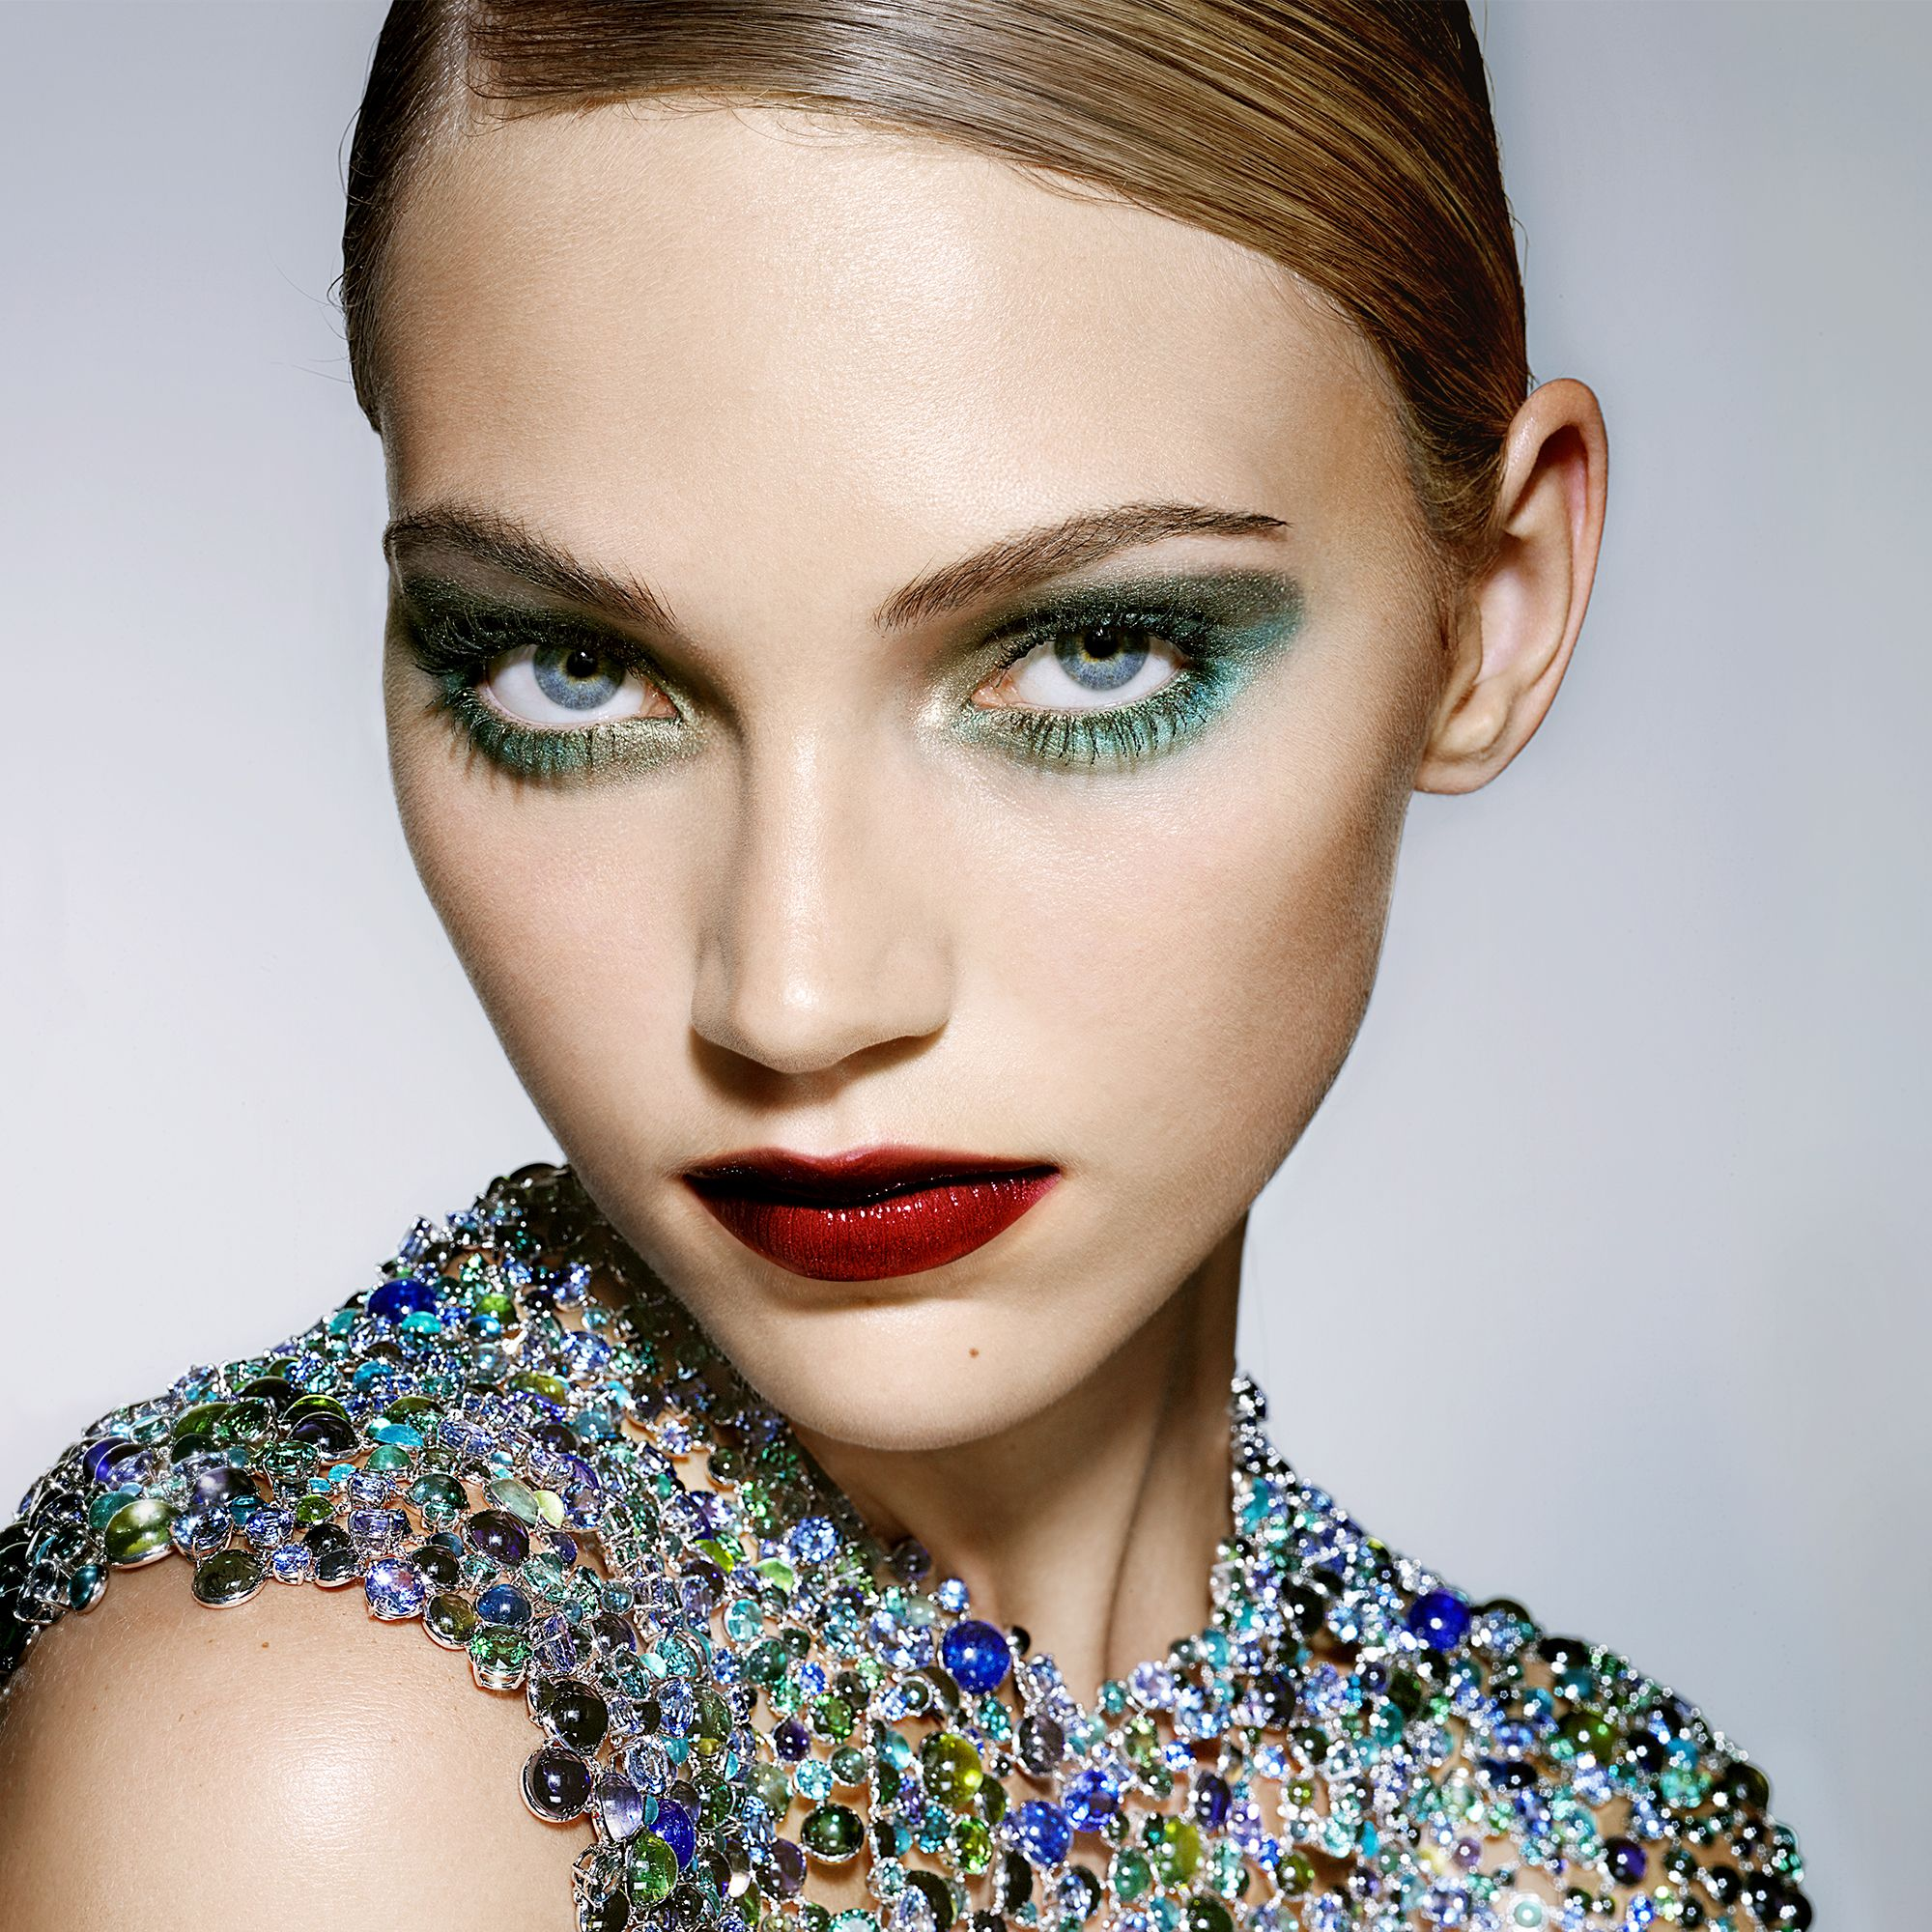 """<p><strong data-redactor-tag=""""strong"""" data-verified=""""redactor"""">BEAUTY BAZAAR:</strong> Update a smoky eye with beautiful blues. Try <a href=""""http://www.ulta.com/eyeshadow-quads?productId=xlsImpprod11851101"""" target=""""_blank"""" data-tracking-id=""""recirc-text-link"""">CoverGirl Eye Shadow Quad in Breathtaking Blues</a> ($8). </p><p><strong data-redactor-tag=""""strong"""" data-verified=""""redactor"""">Tiffany &amp&#x3B; Co.</strong> necklace, $1,280,000, 800-843-3269. </p>"""